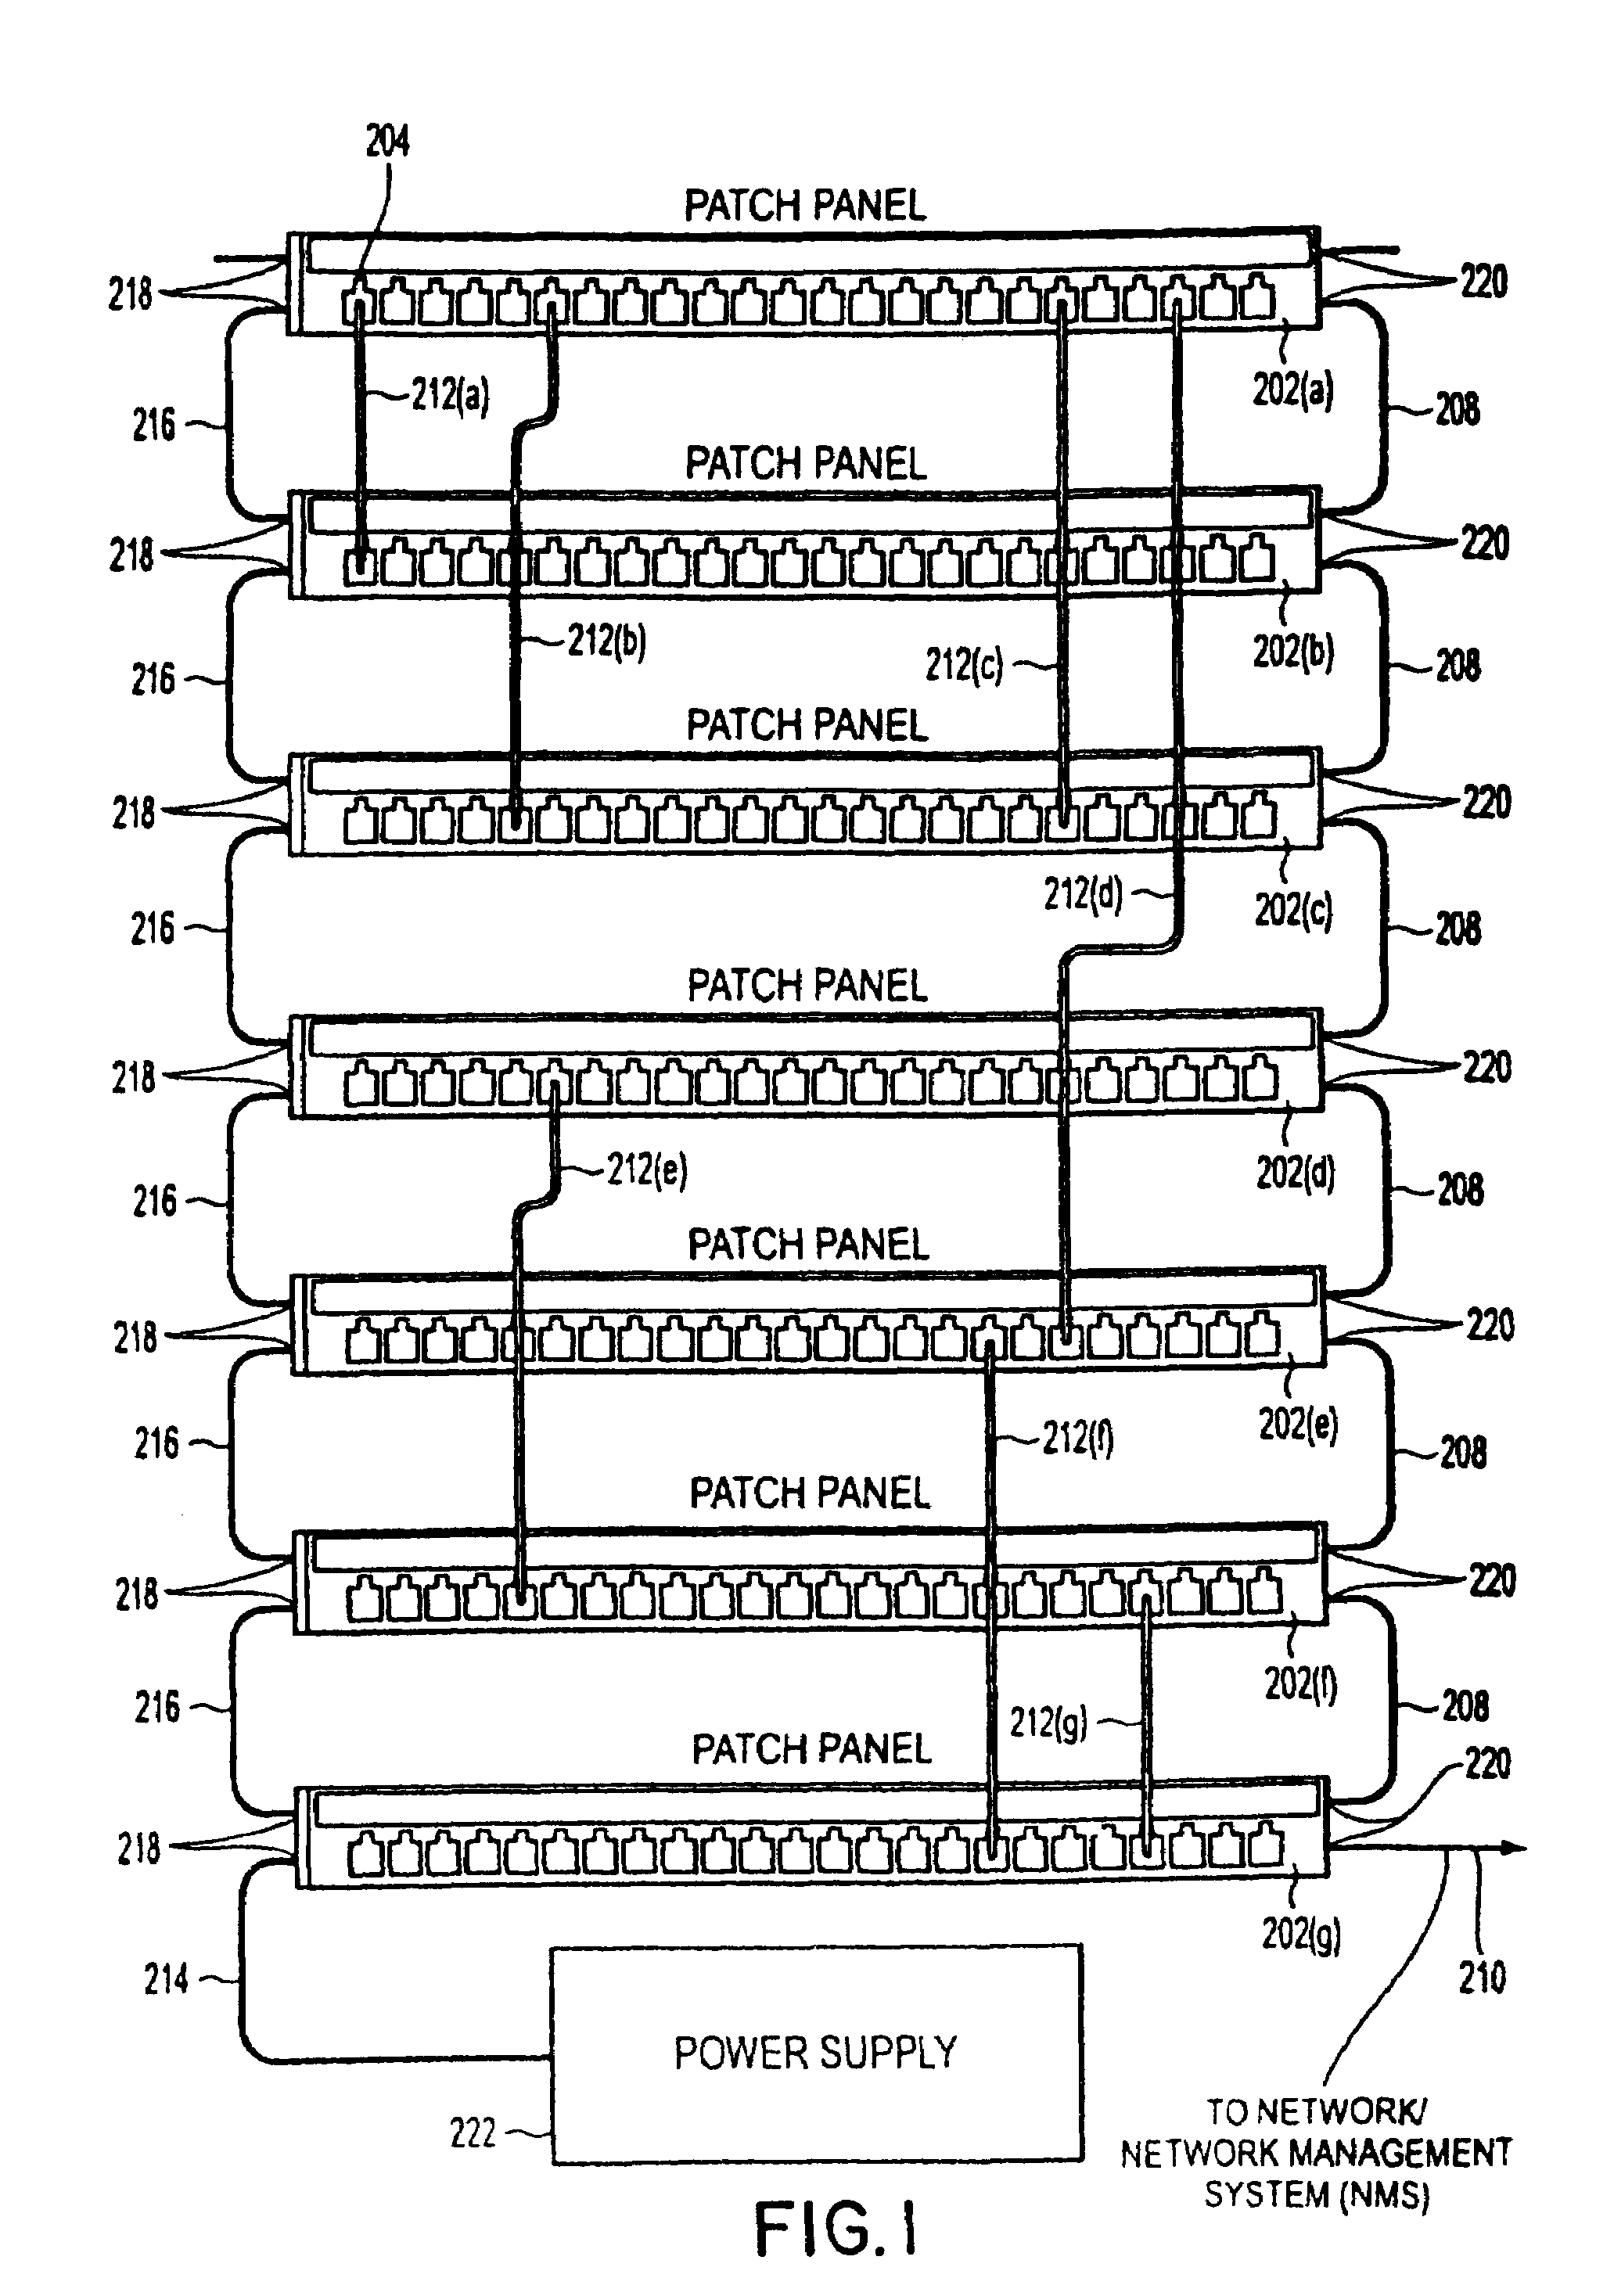 US07534137 20090519 D00001 patent us7534137 method and apparatus for patch panel patch cord ortronics patch panel wiring diagram at gsmportal.co